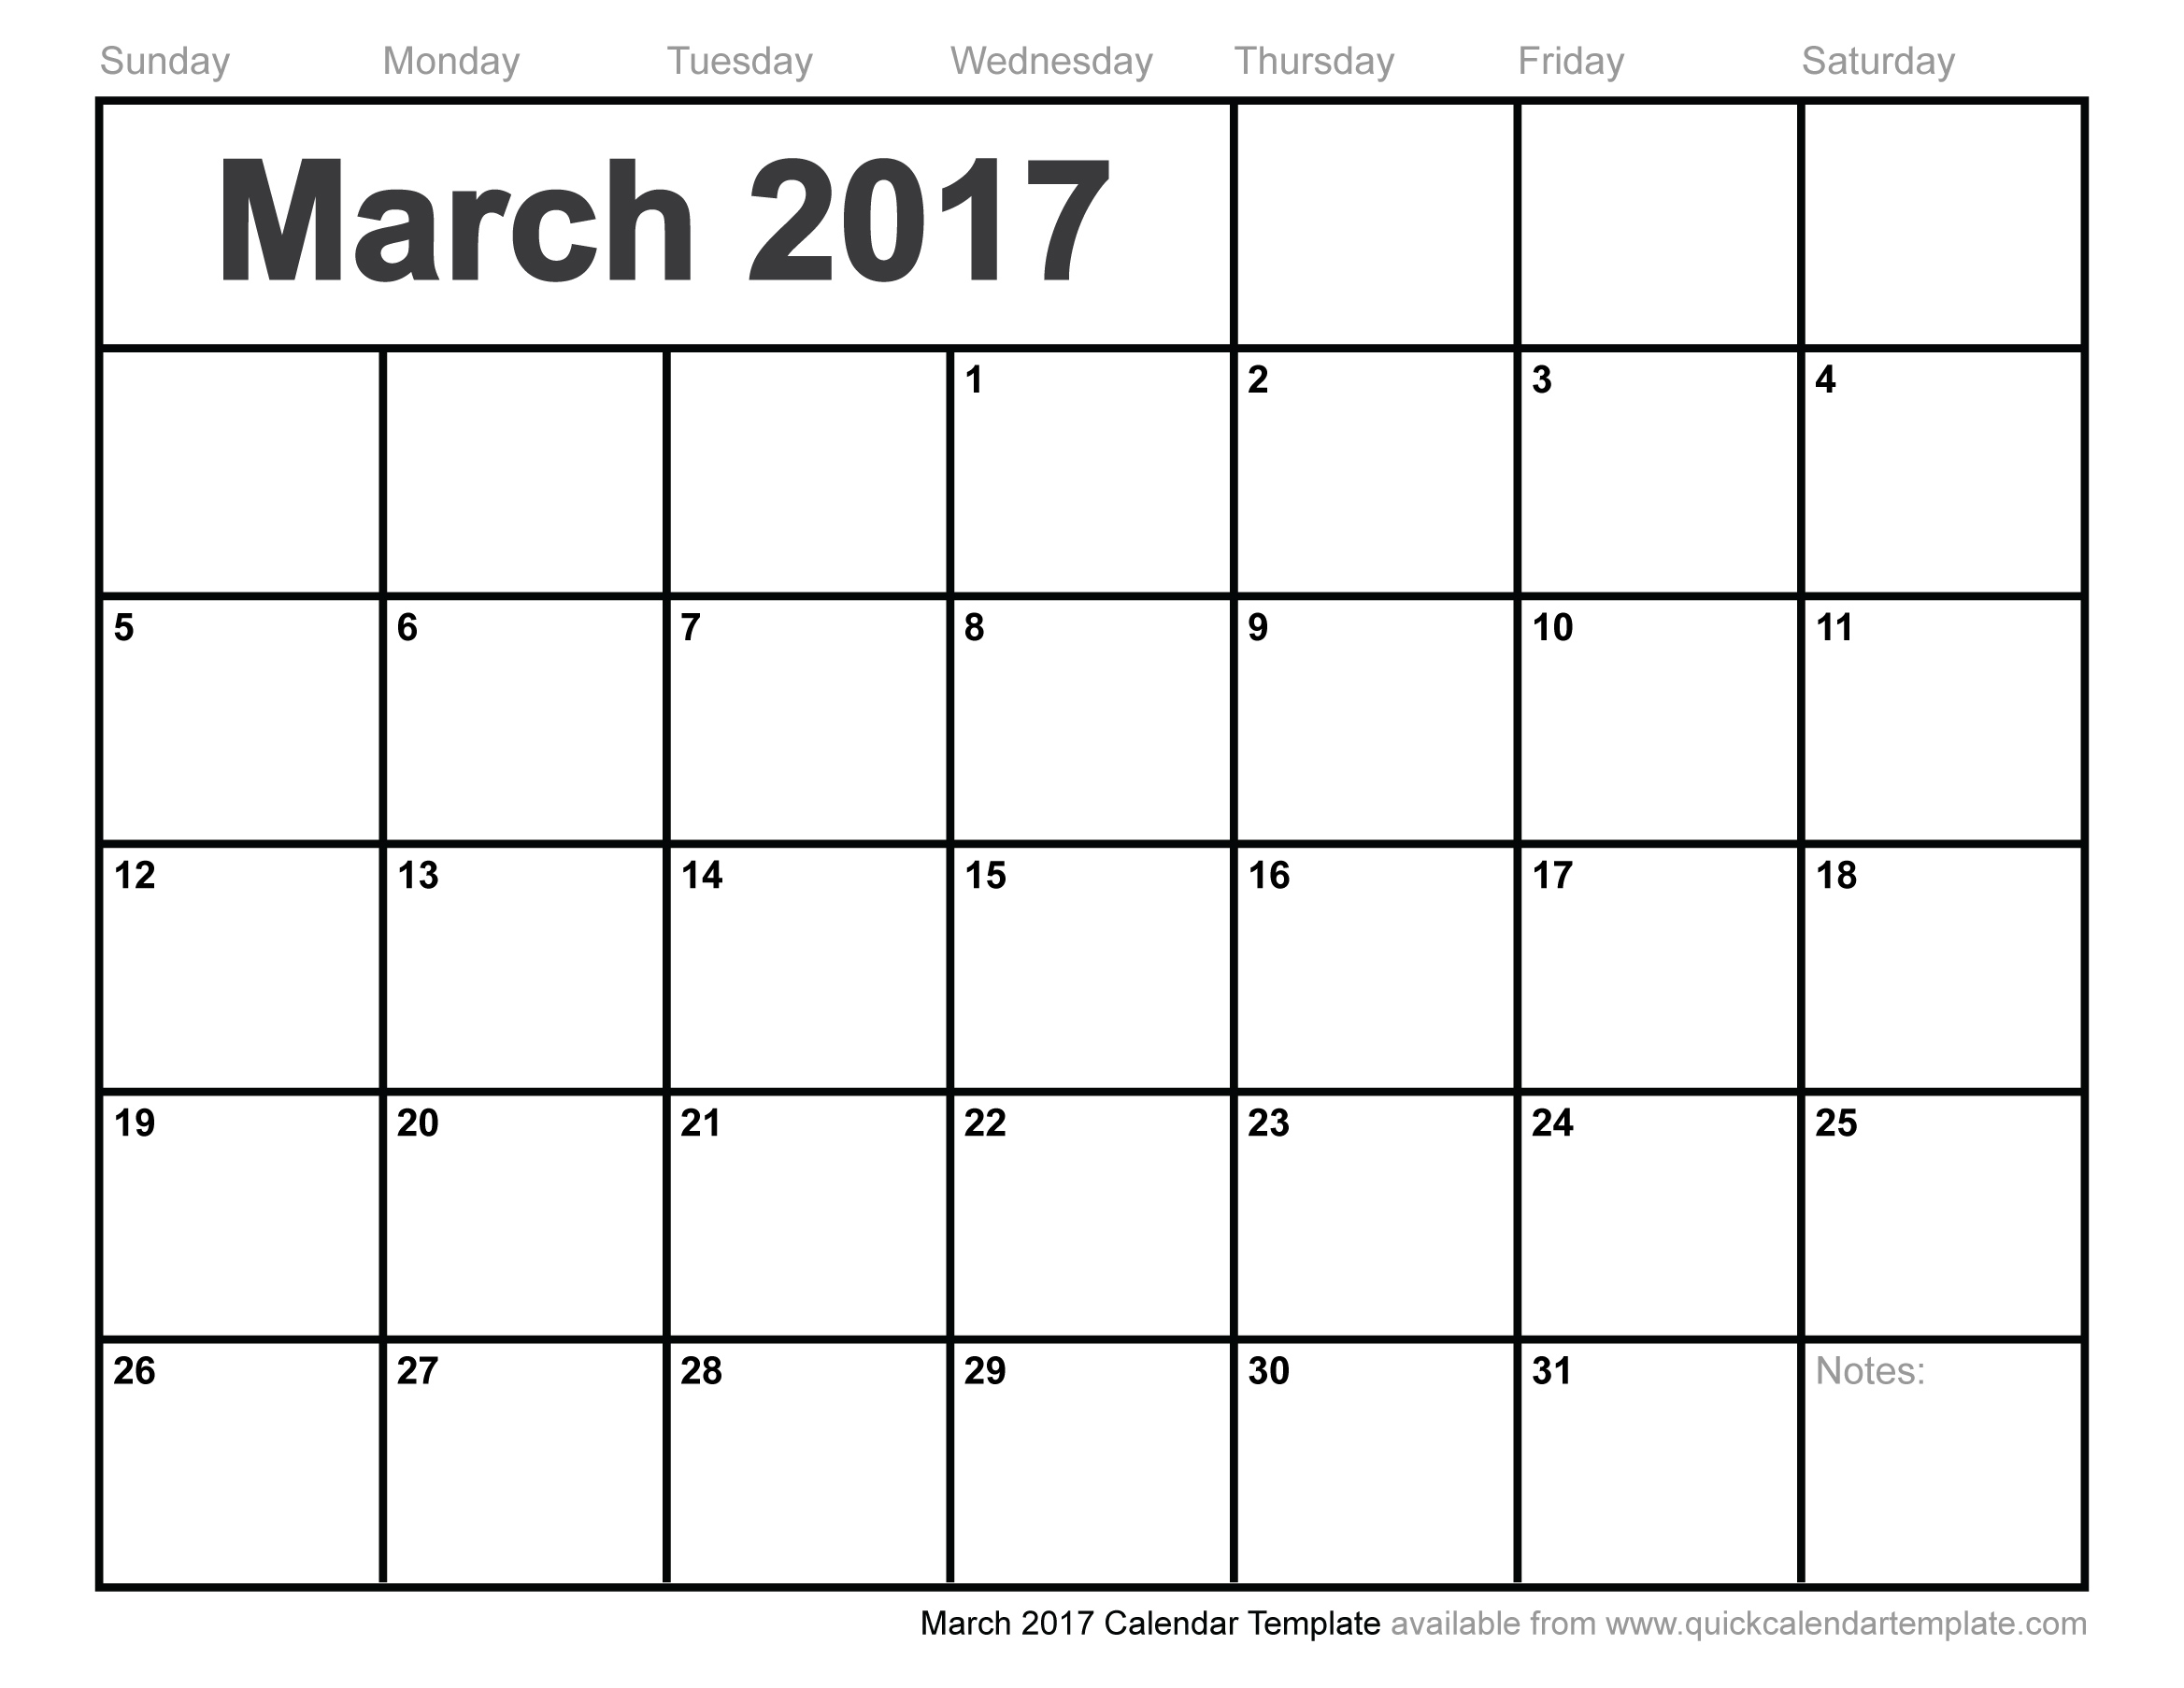 Free-Blank-Printable-March-2017-Calendar-Template with regard to Blank Printable Calendar March